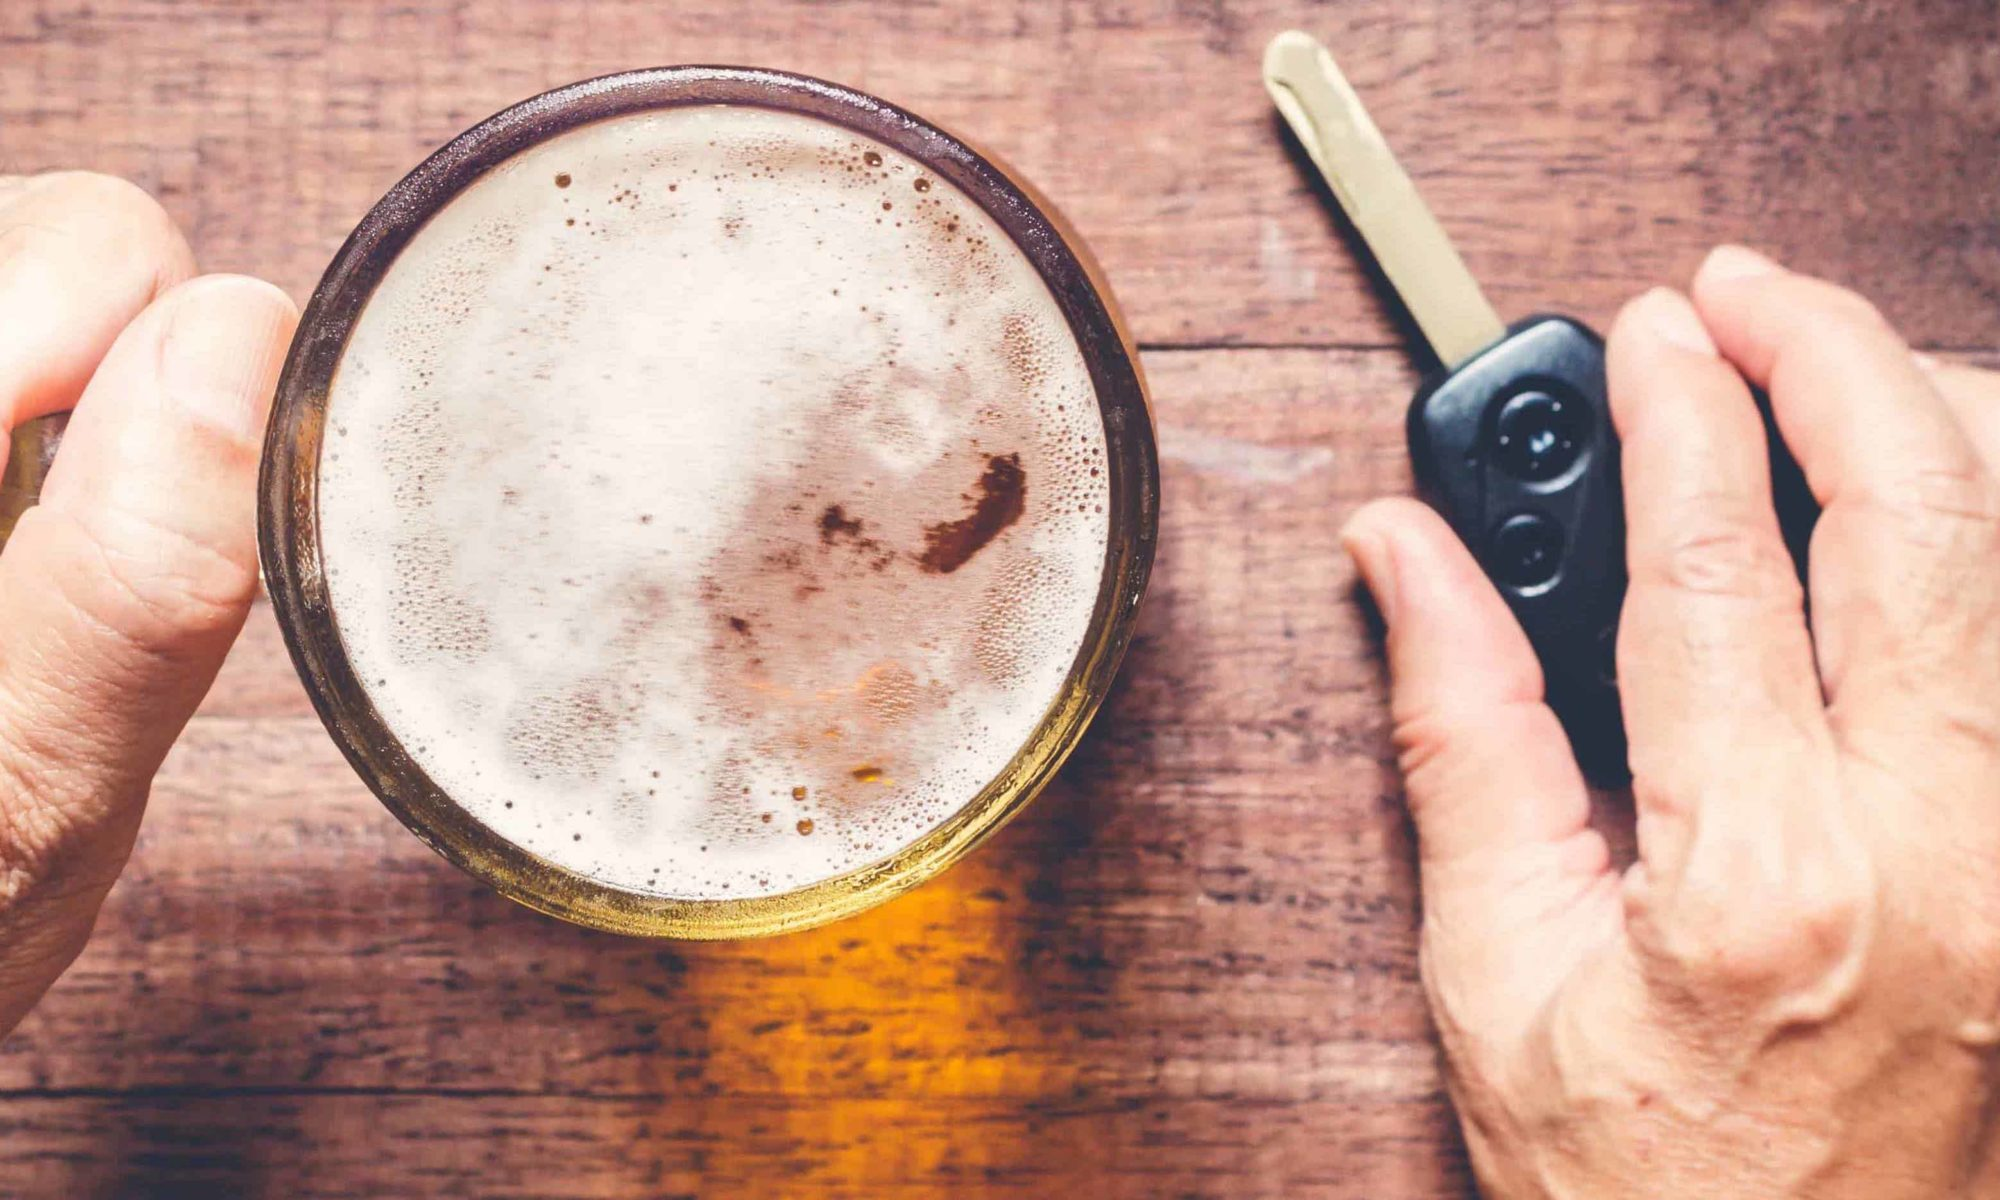 A man's hands holding a car key next to a beer, representing DUI's